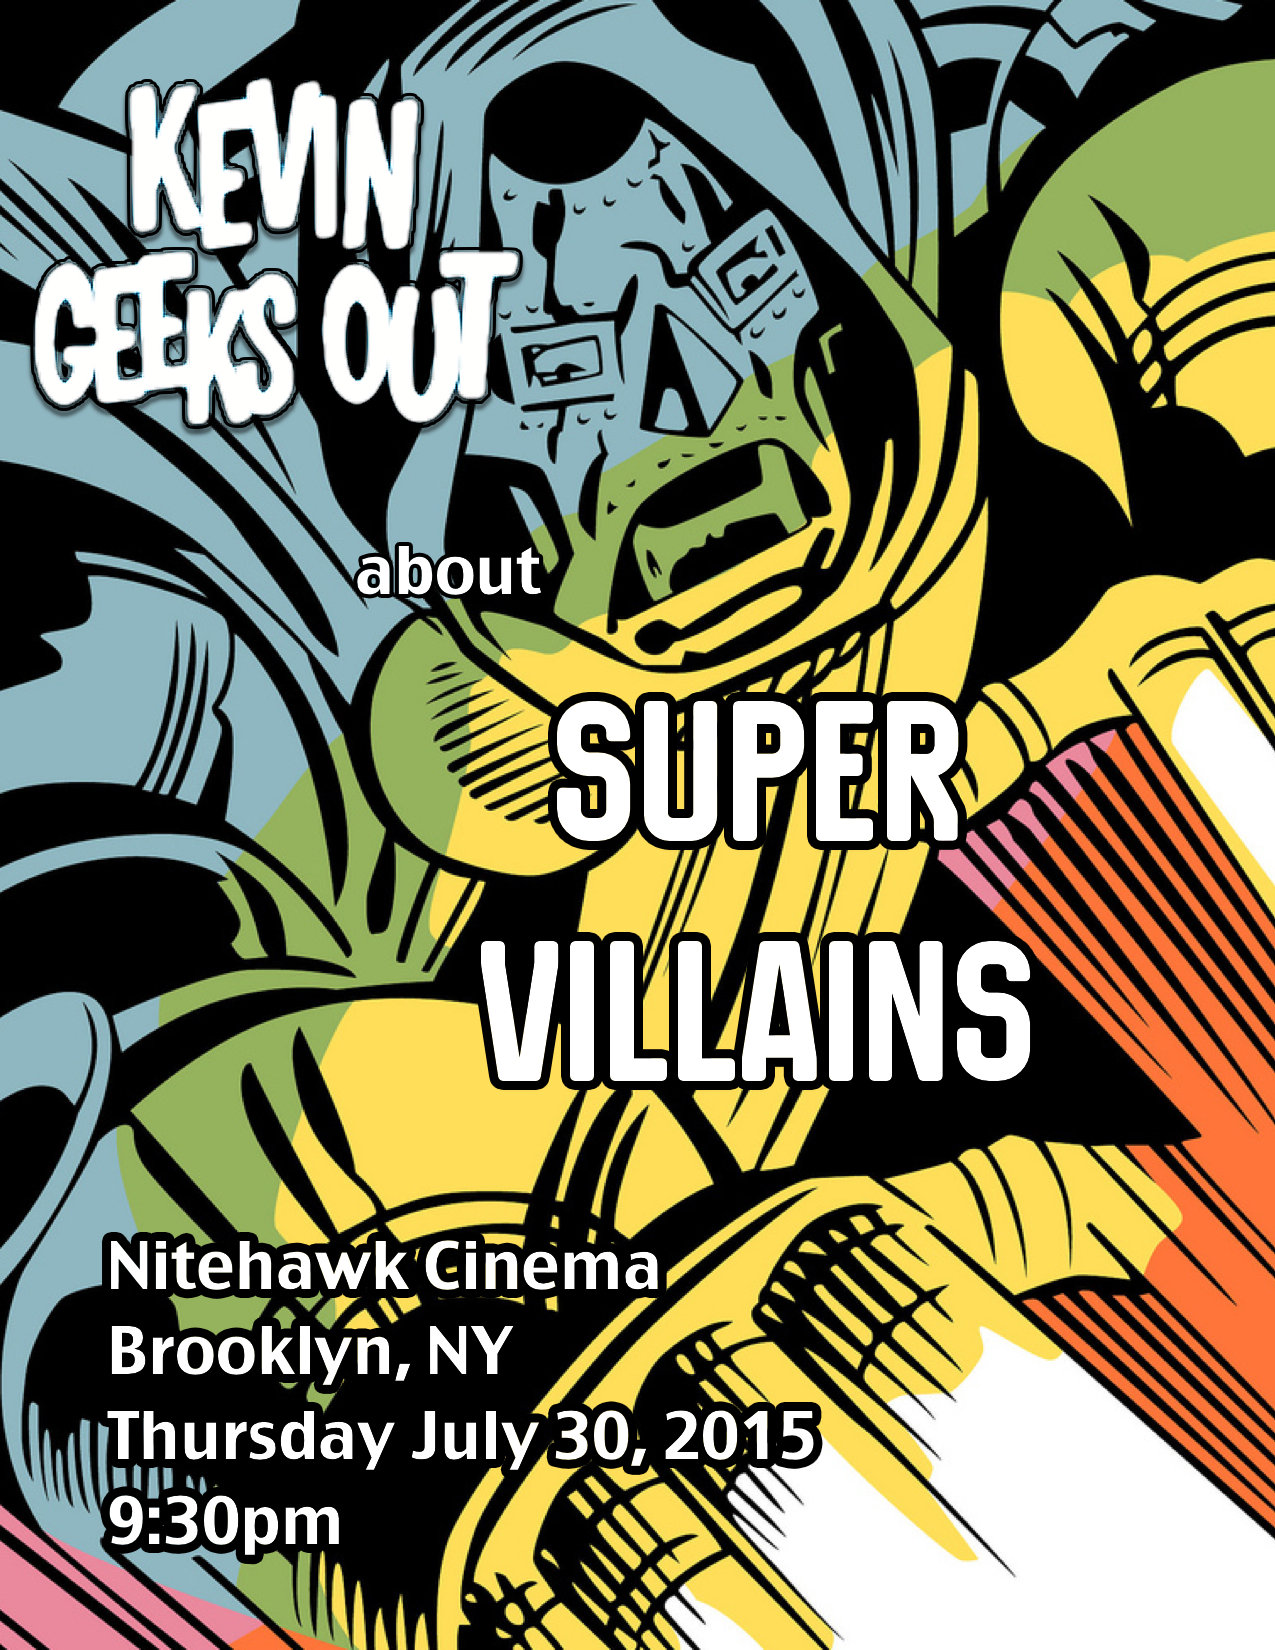 Poster for Kevin Geeks Out About Super Villains